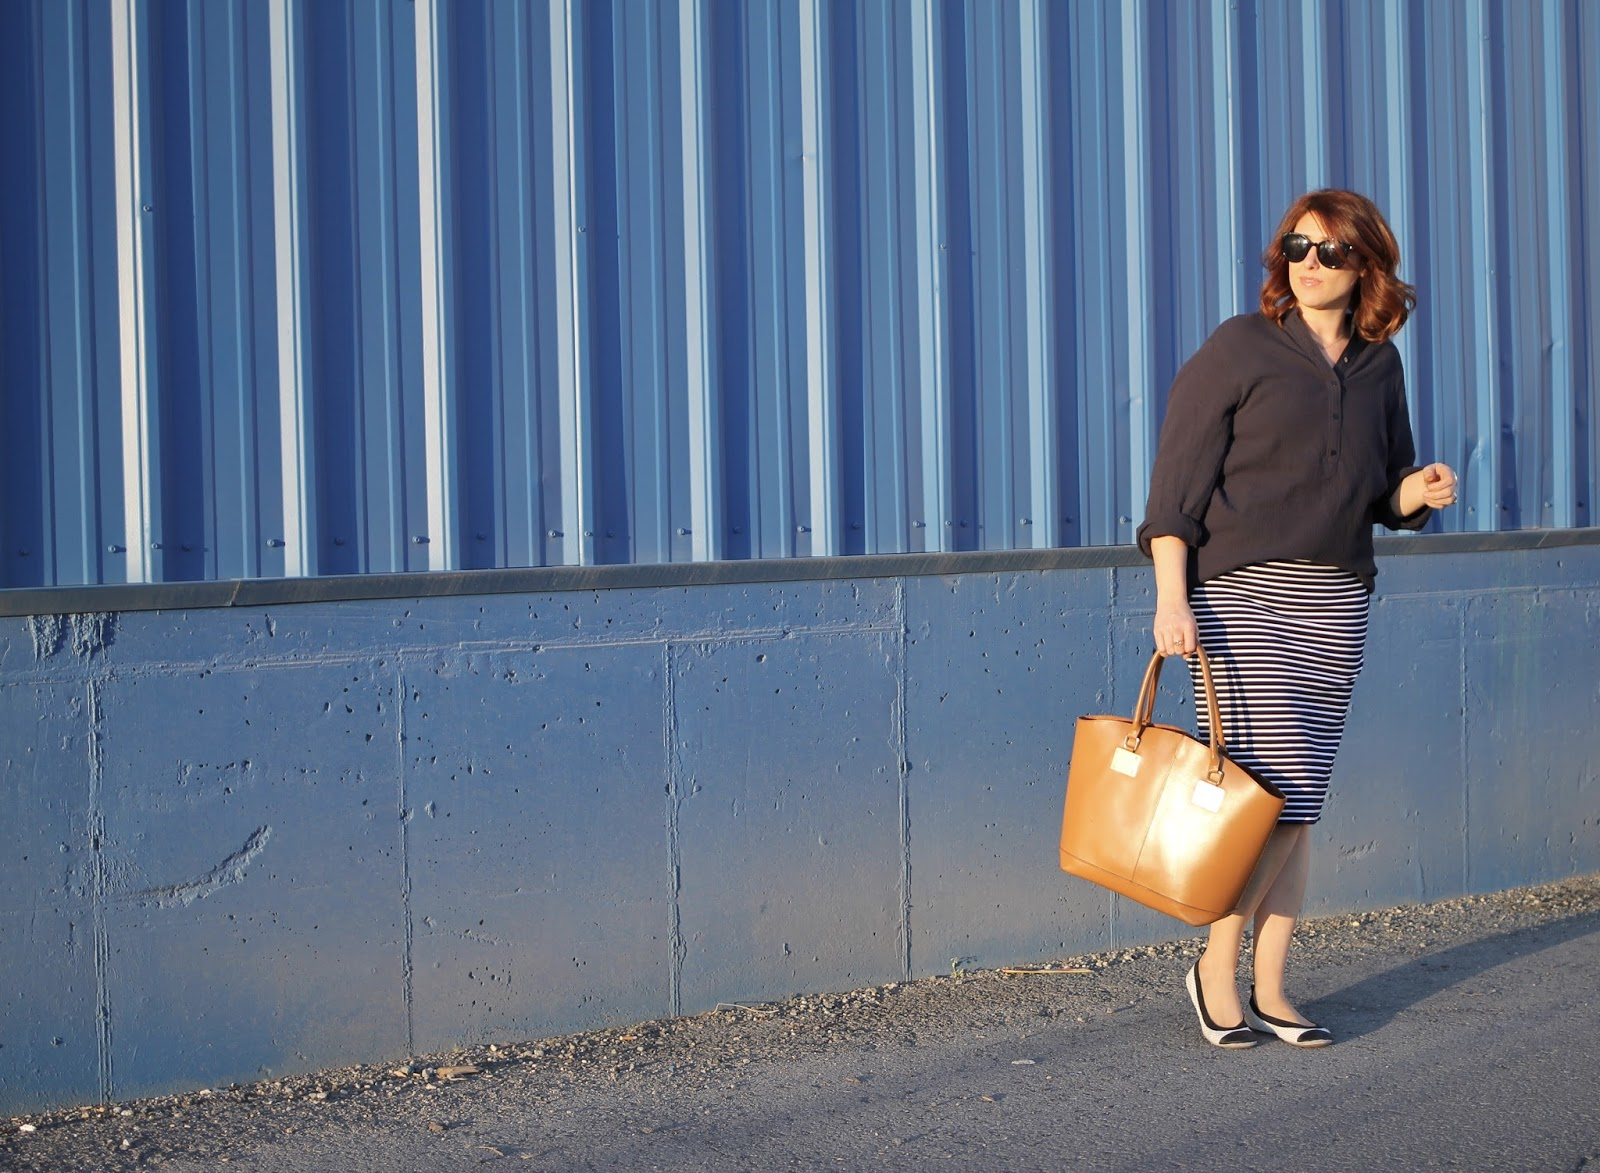 yosi samra flats, striped pencil skirt, navy crinkle tunic H&M, congac tote bag leather